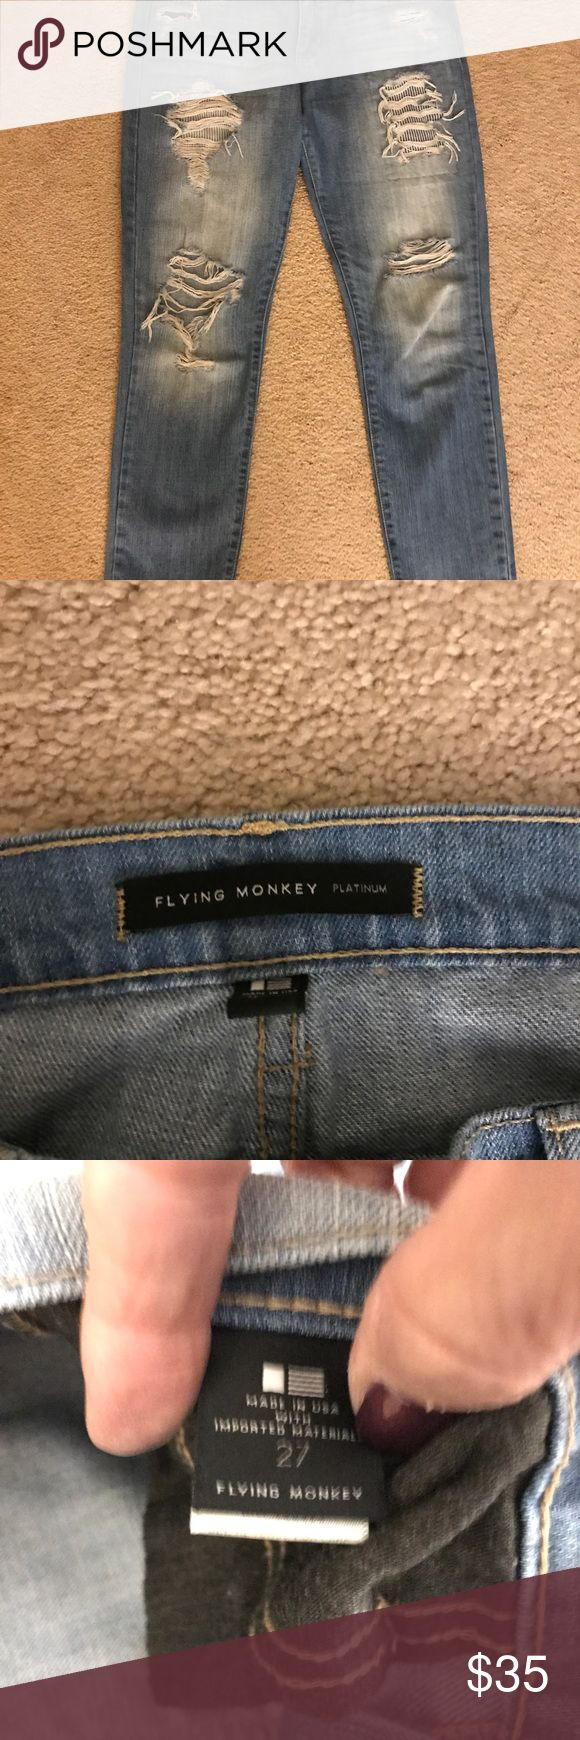 Flying Monkey Boyfriend Jeans, Size 27 Gently used pair of light washed Flying Monkey brand jeans in size 27.  They are a size 27, mid rise, lighter wash.  The upper  distressed areas have patches on the underside in a striped material and the lower distressed areas are open.  Length is to the ankles and they can be rolled up. Flying Monkey Jeans Boyfriend